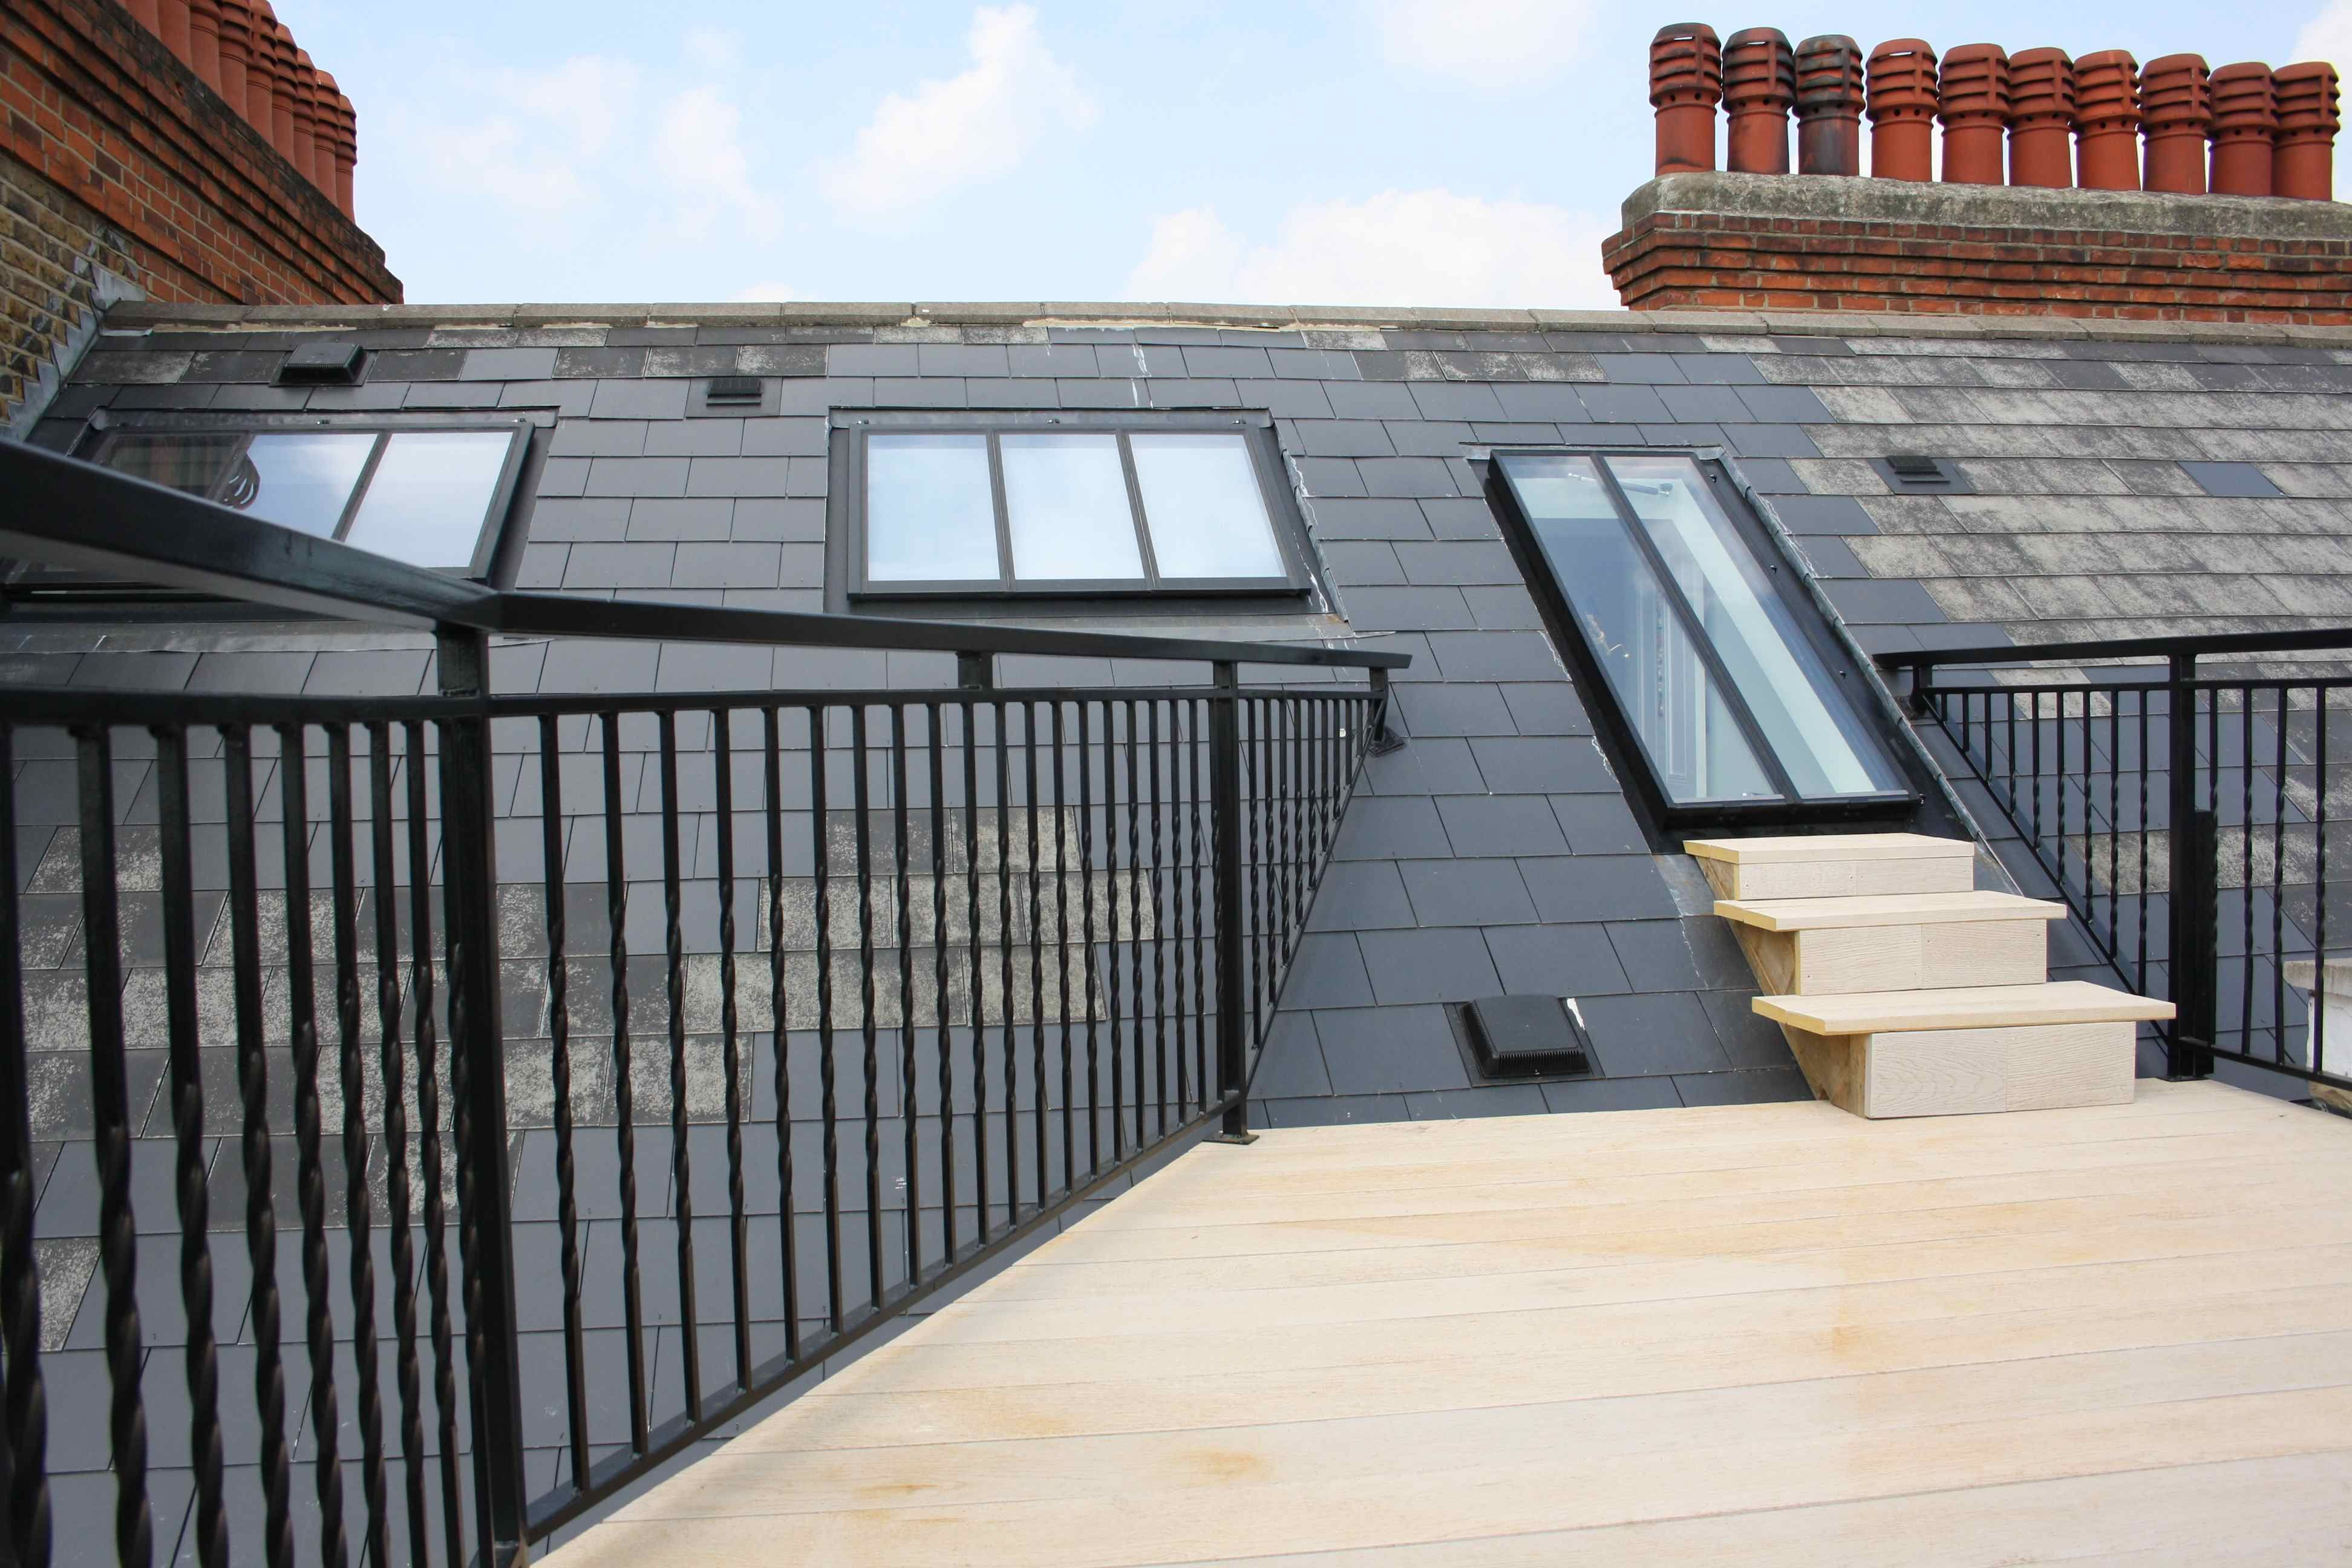 Roof Terrace And Loft Conversion To A Flat West London Loft Conversion Roof Loft Conversion Loft Conversion Decor